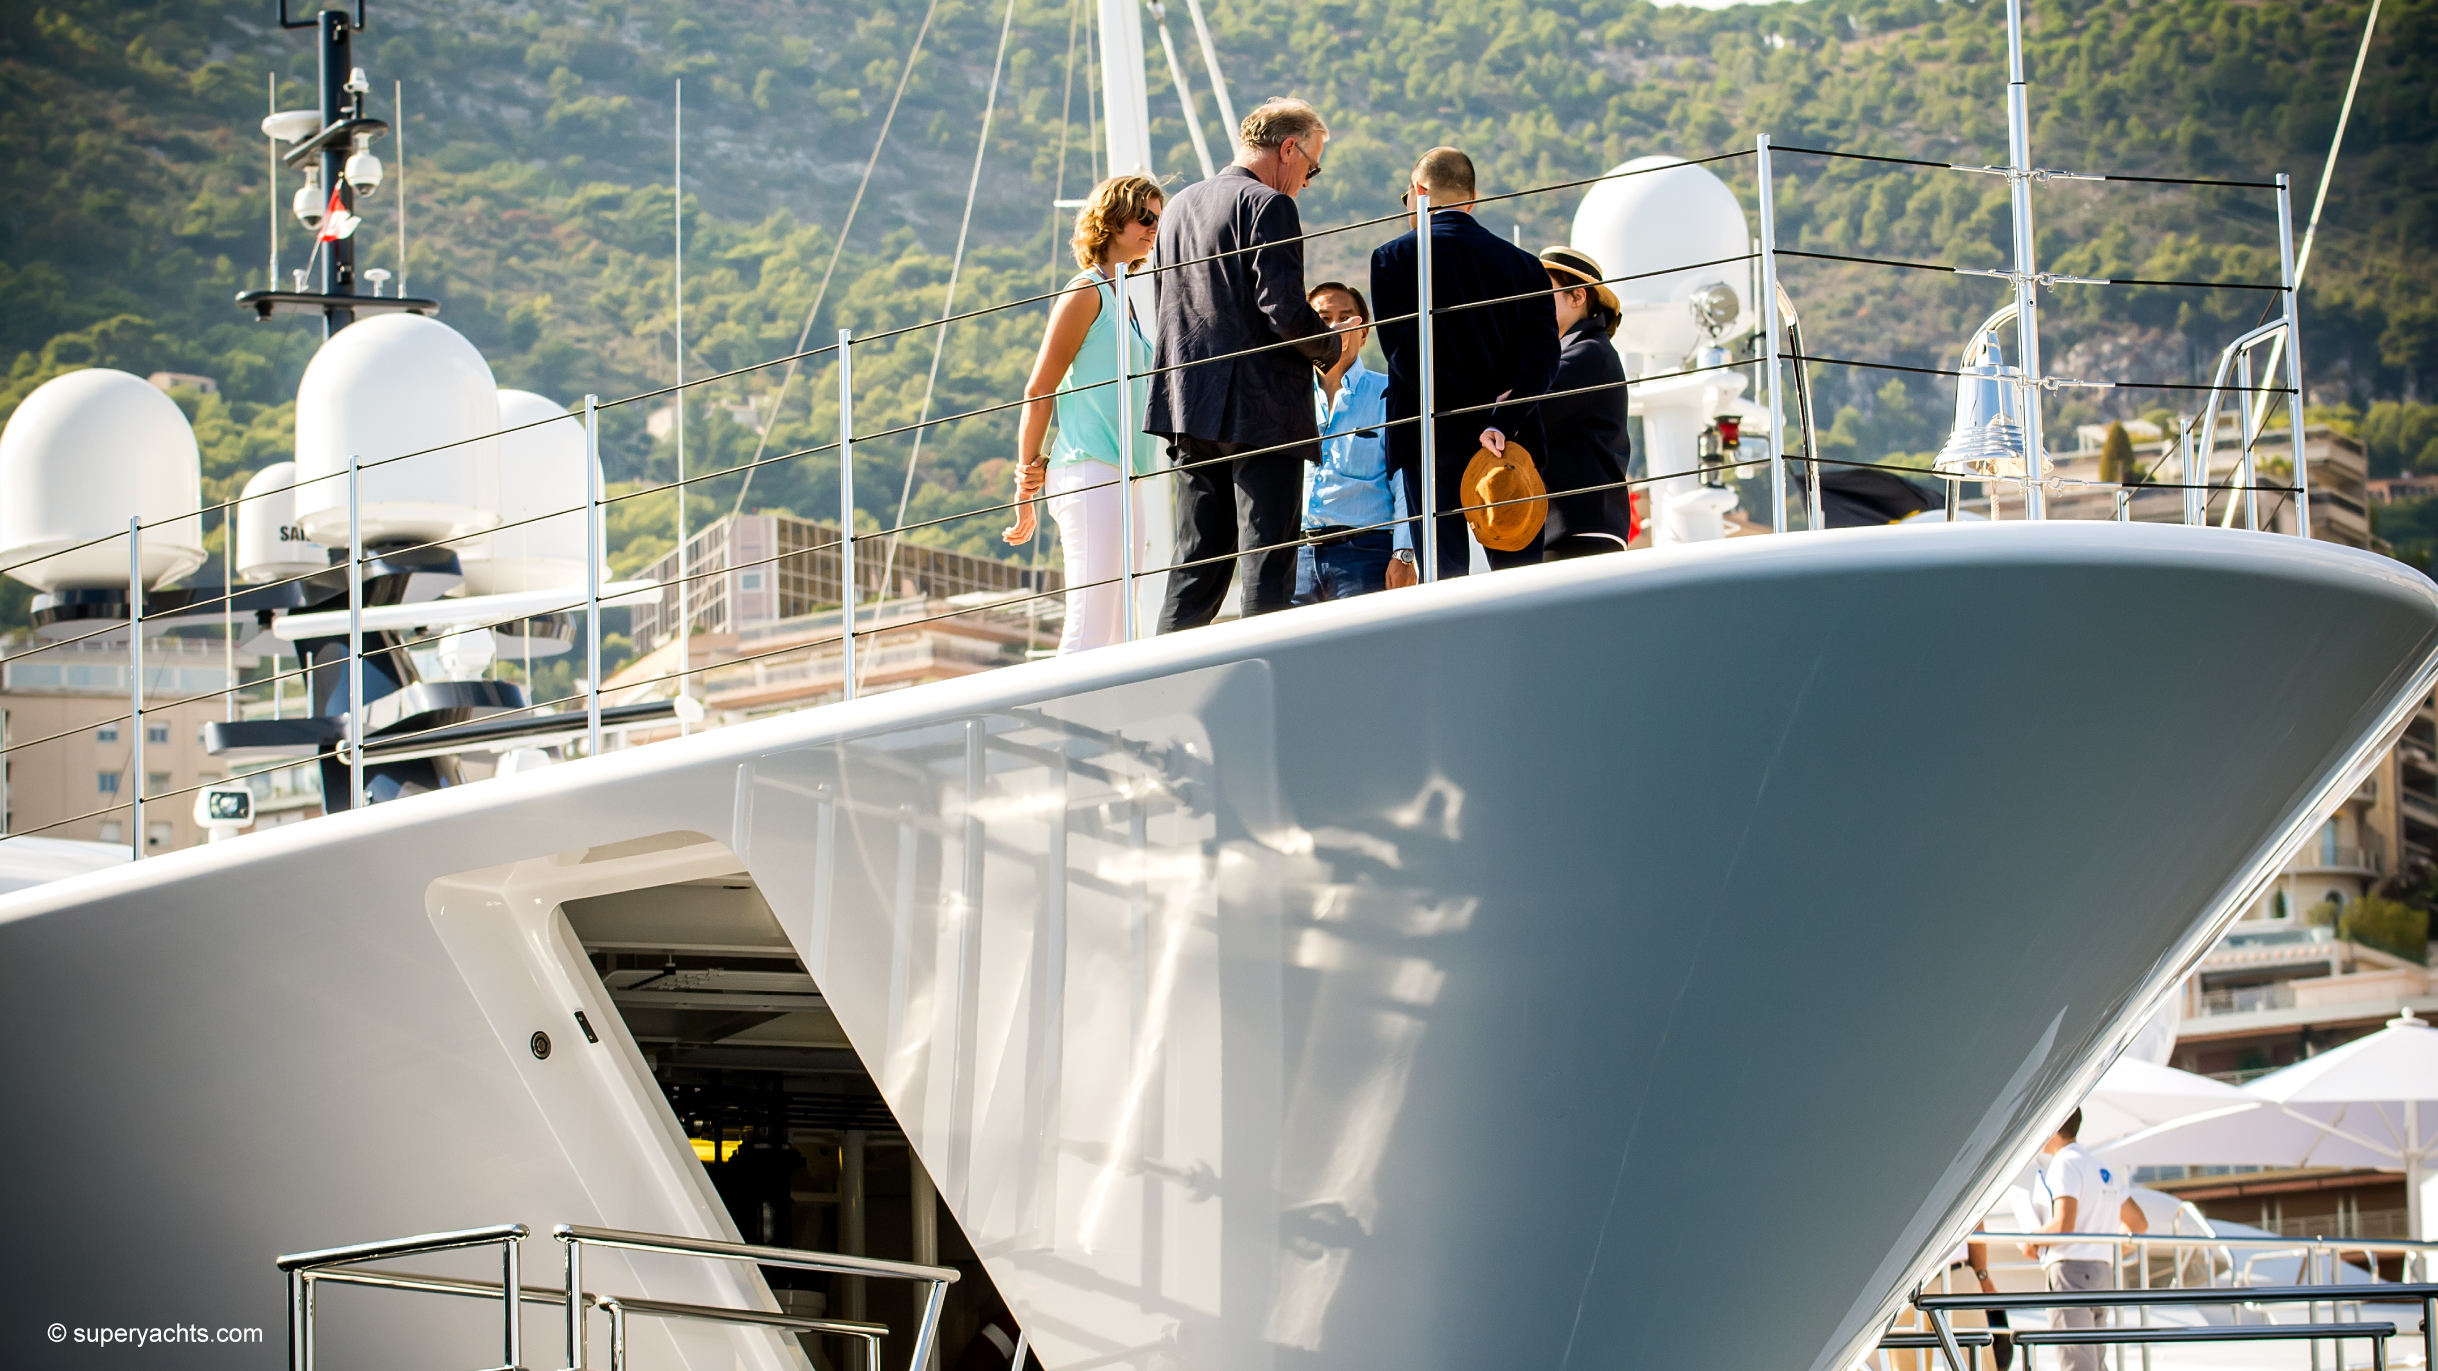 People viewing super yachts at Monaco Yacht Show